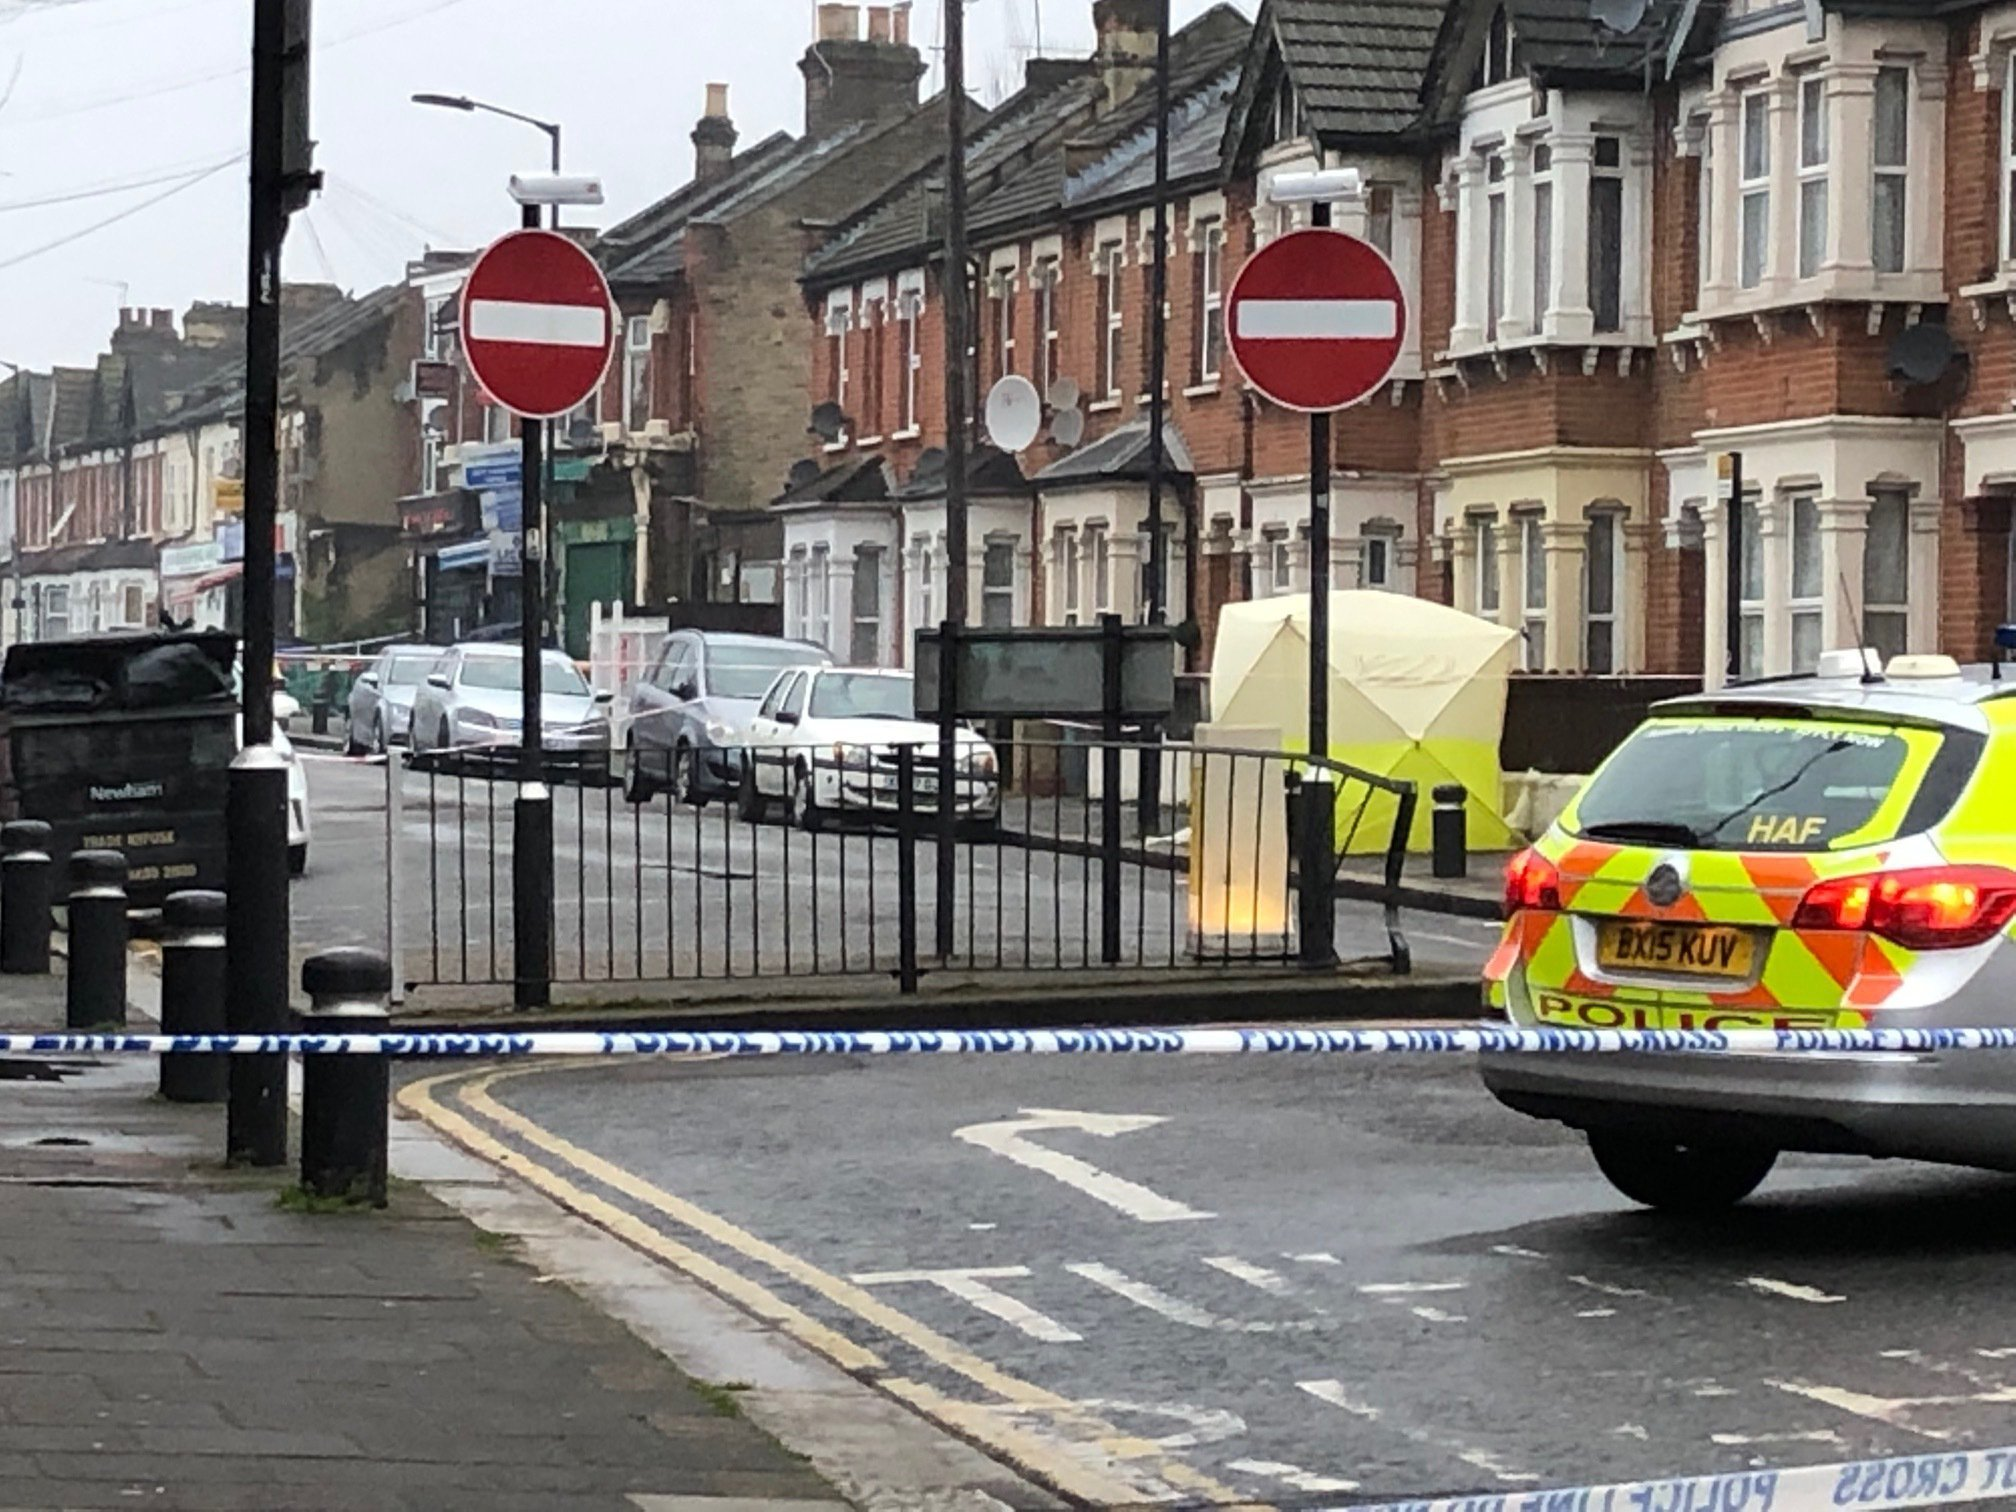 One dead after knife and gun attack in Newham, east London